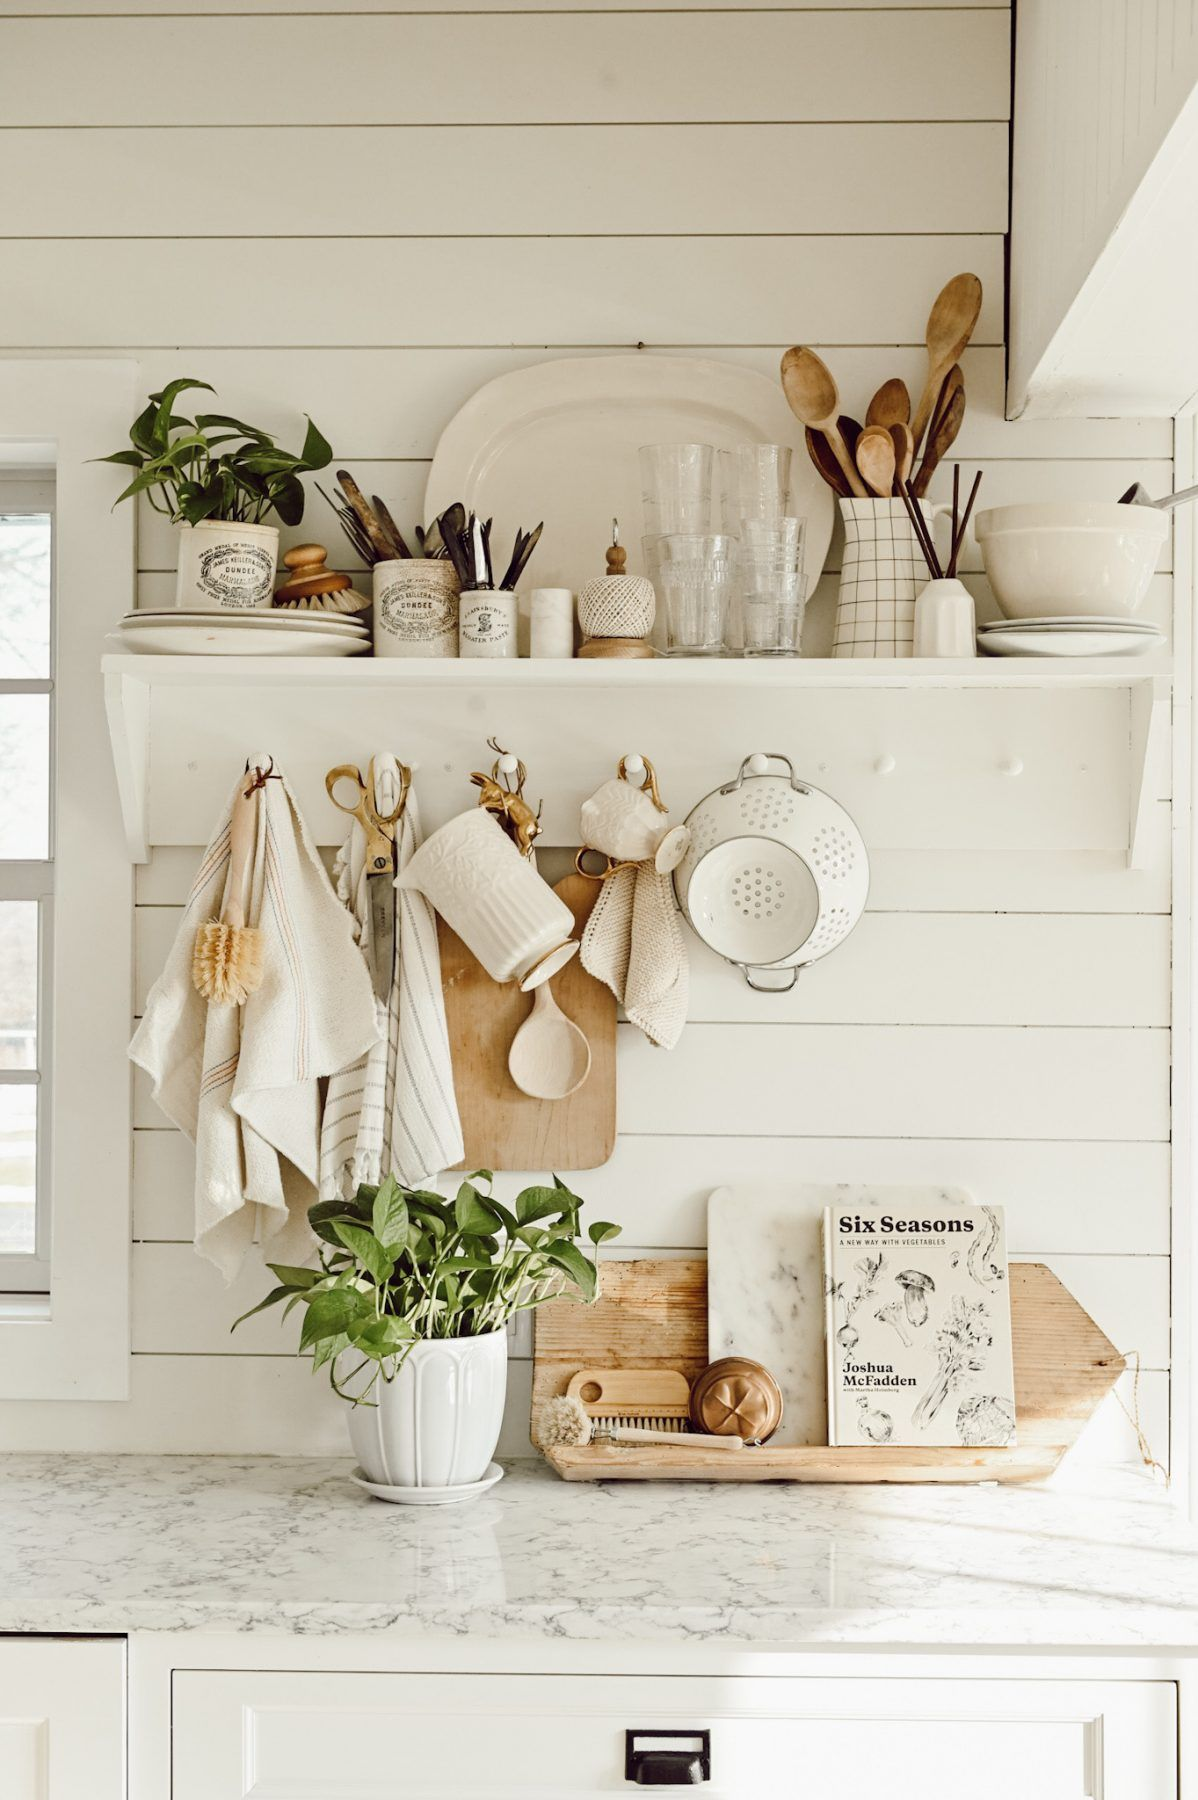 The perfect Cozy Winter Kitchen